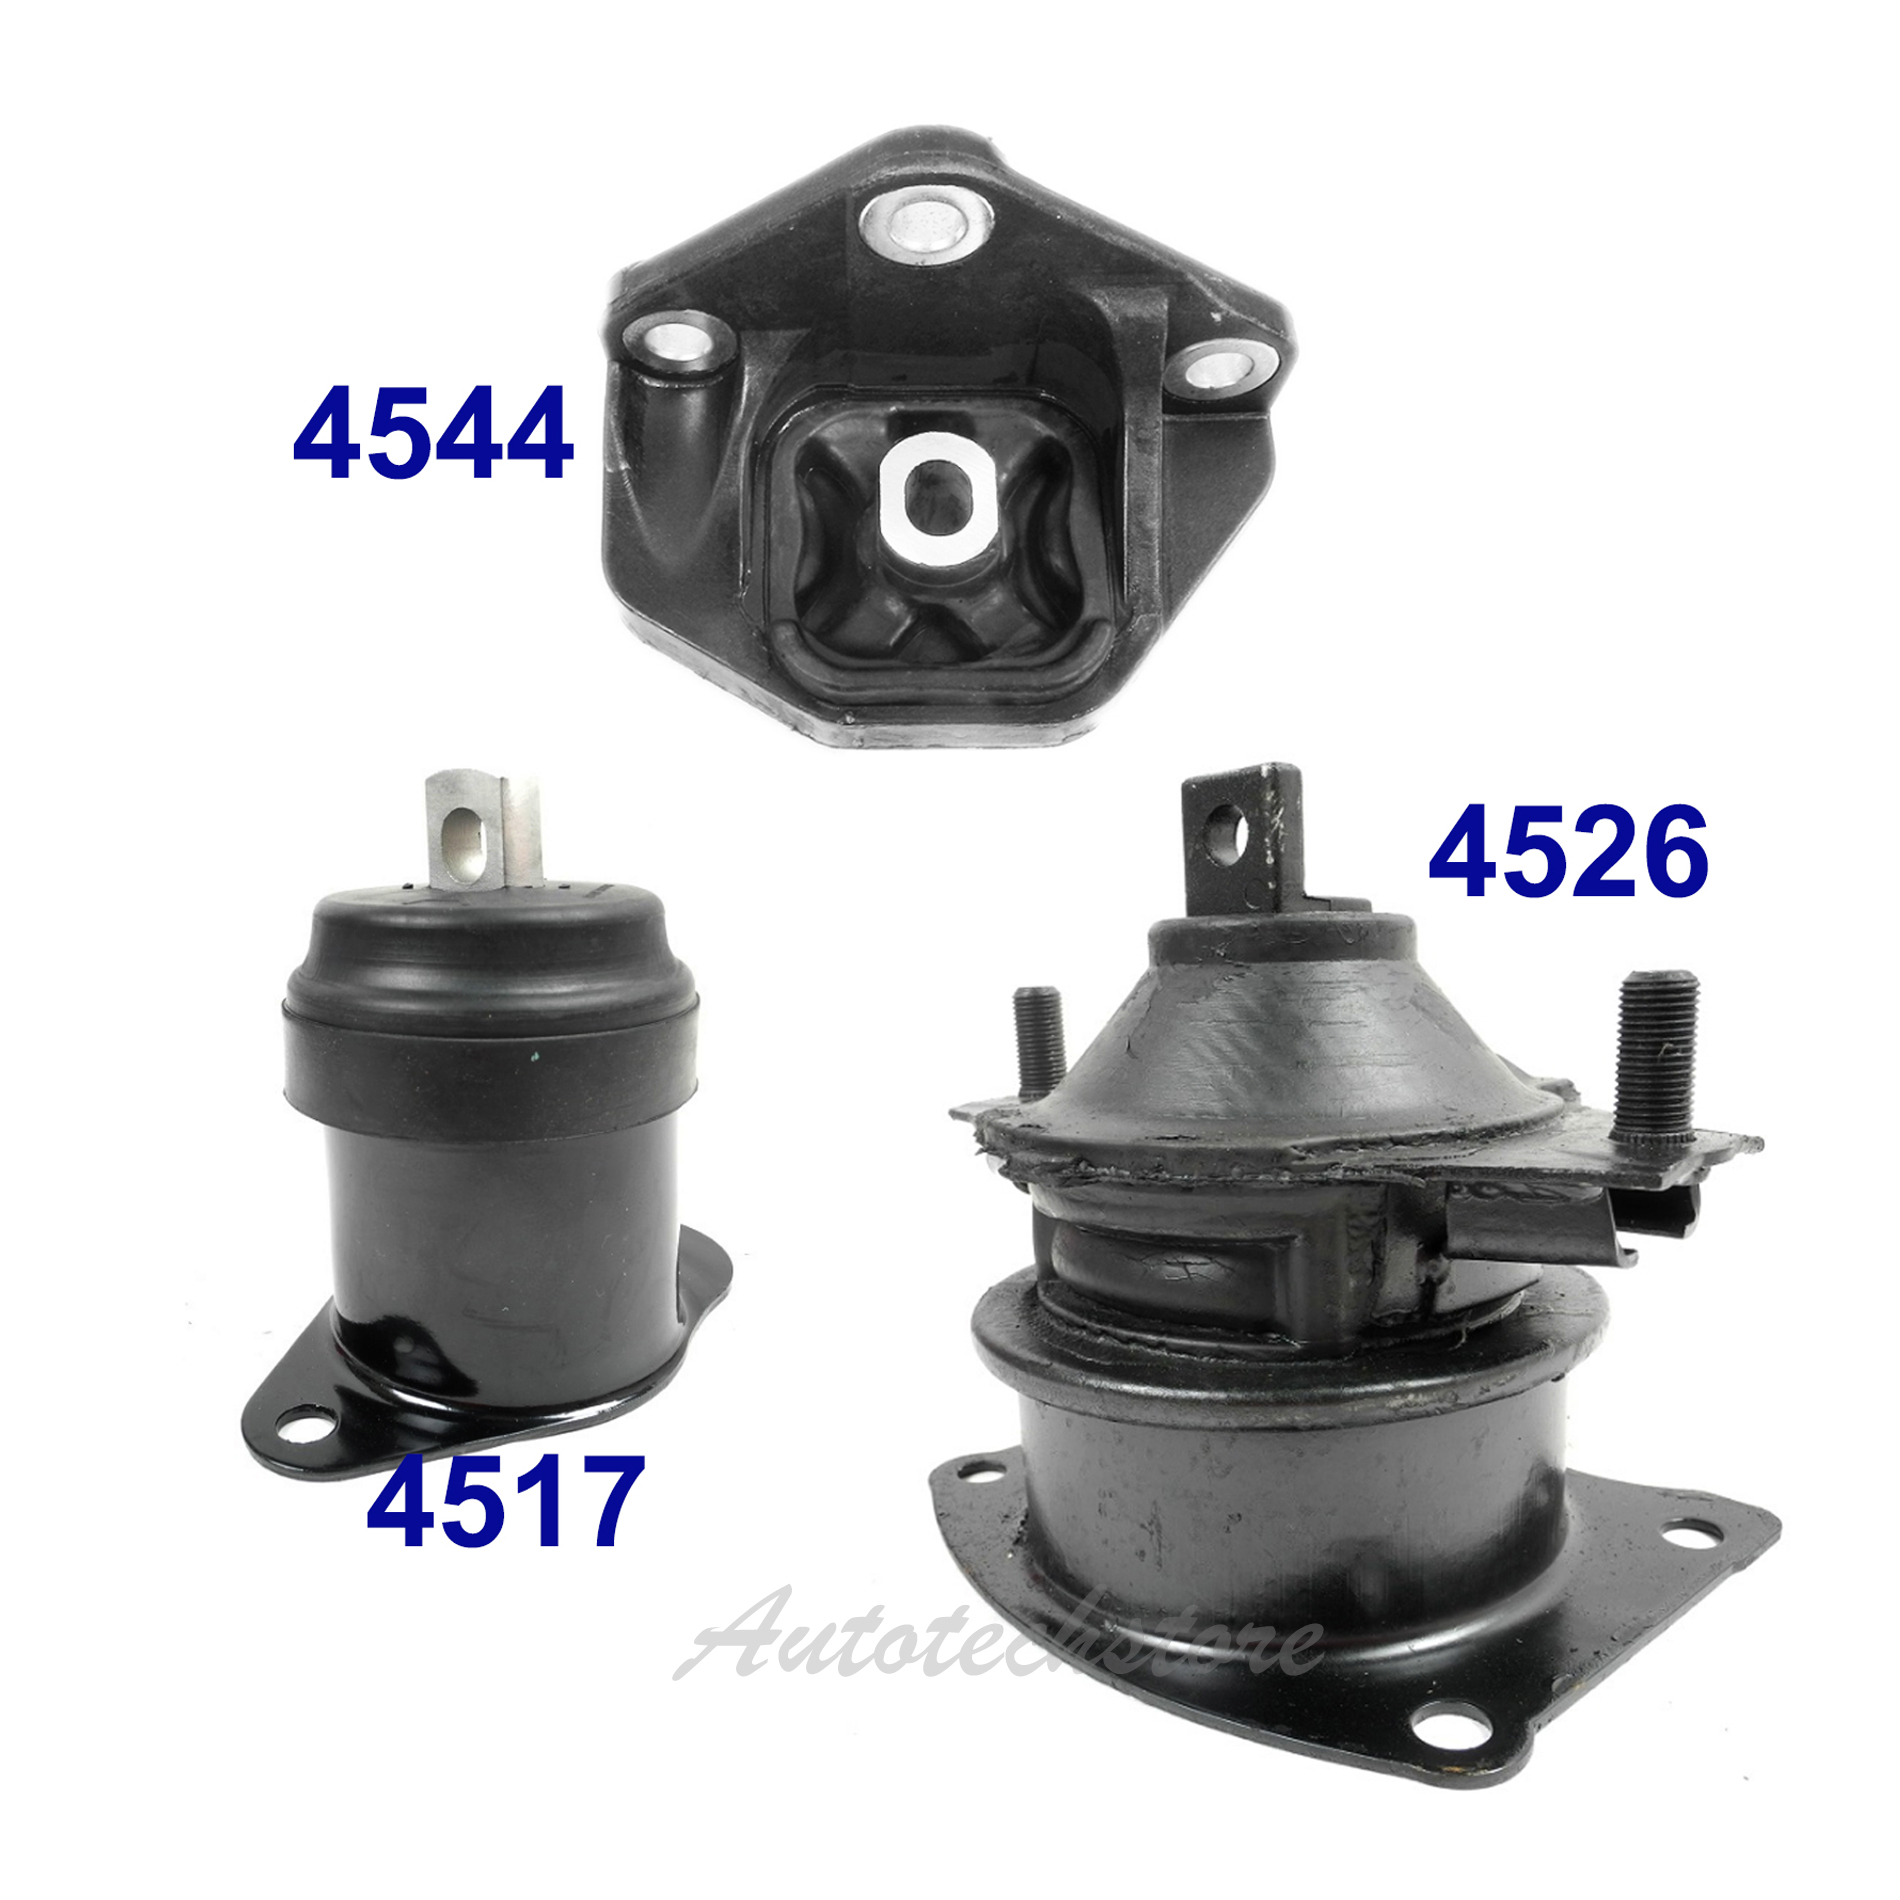 For 04-06 Acura TL 3.2L Auto Engine Motor /&Trans Mount 3PCS 4544 4526 4517 M1317